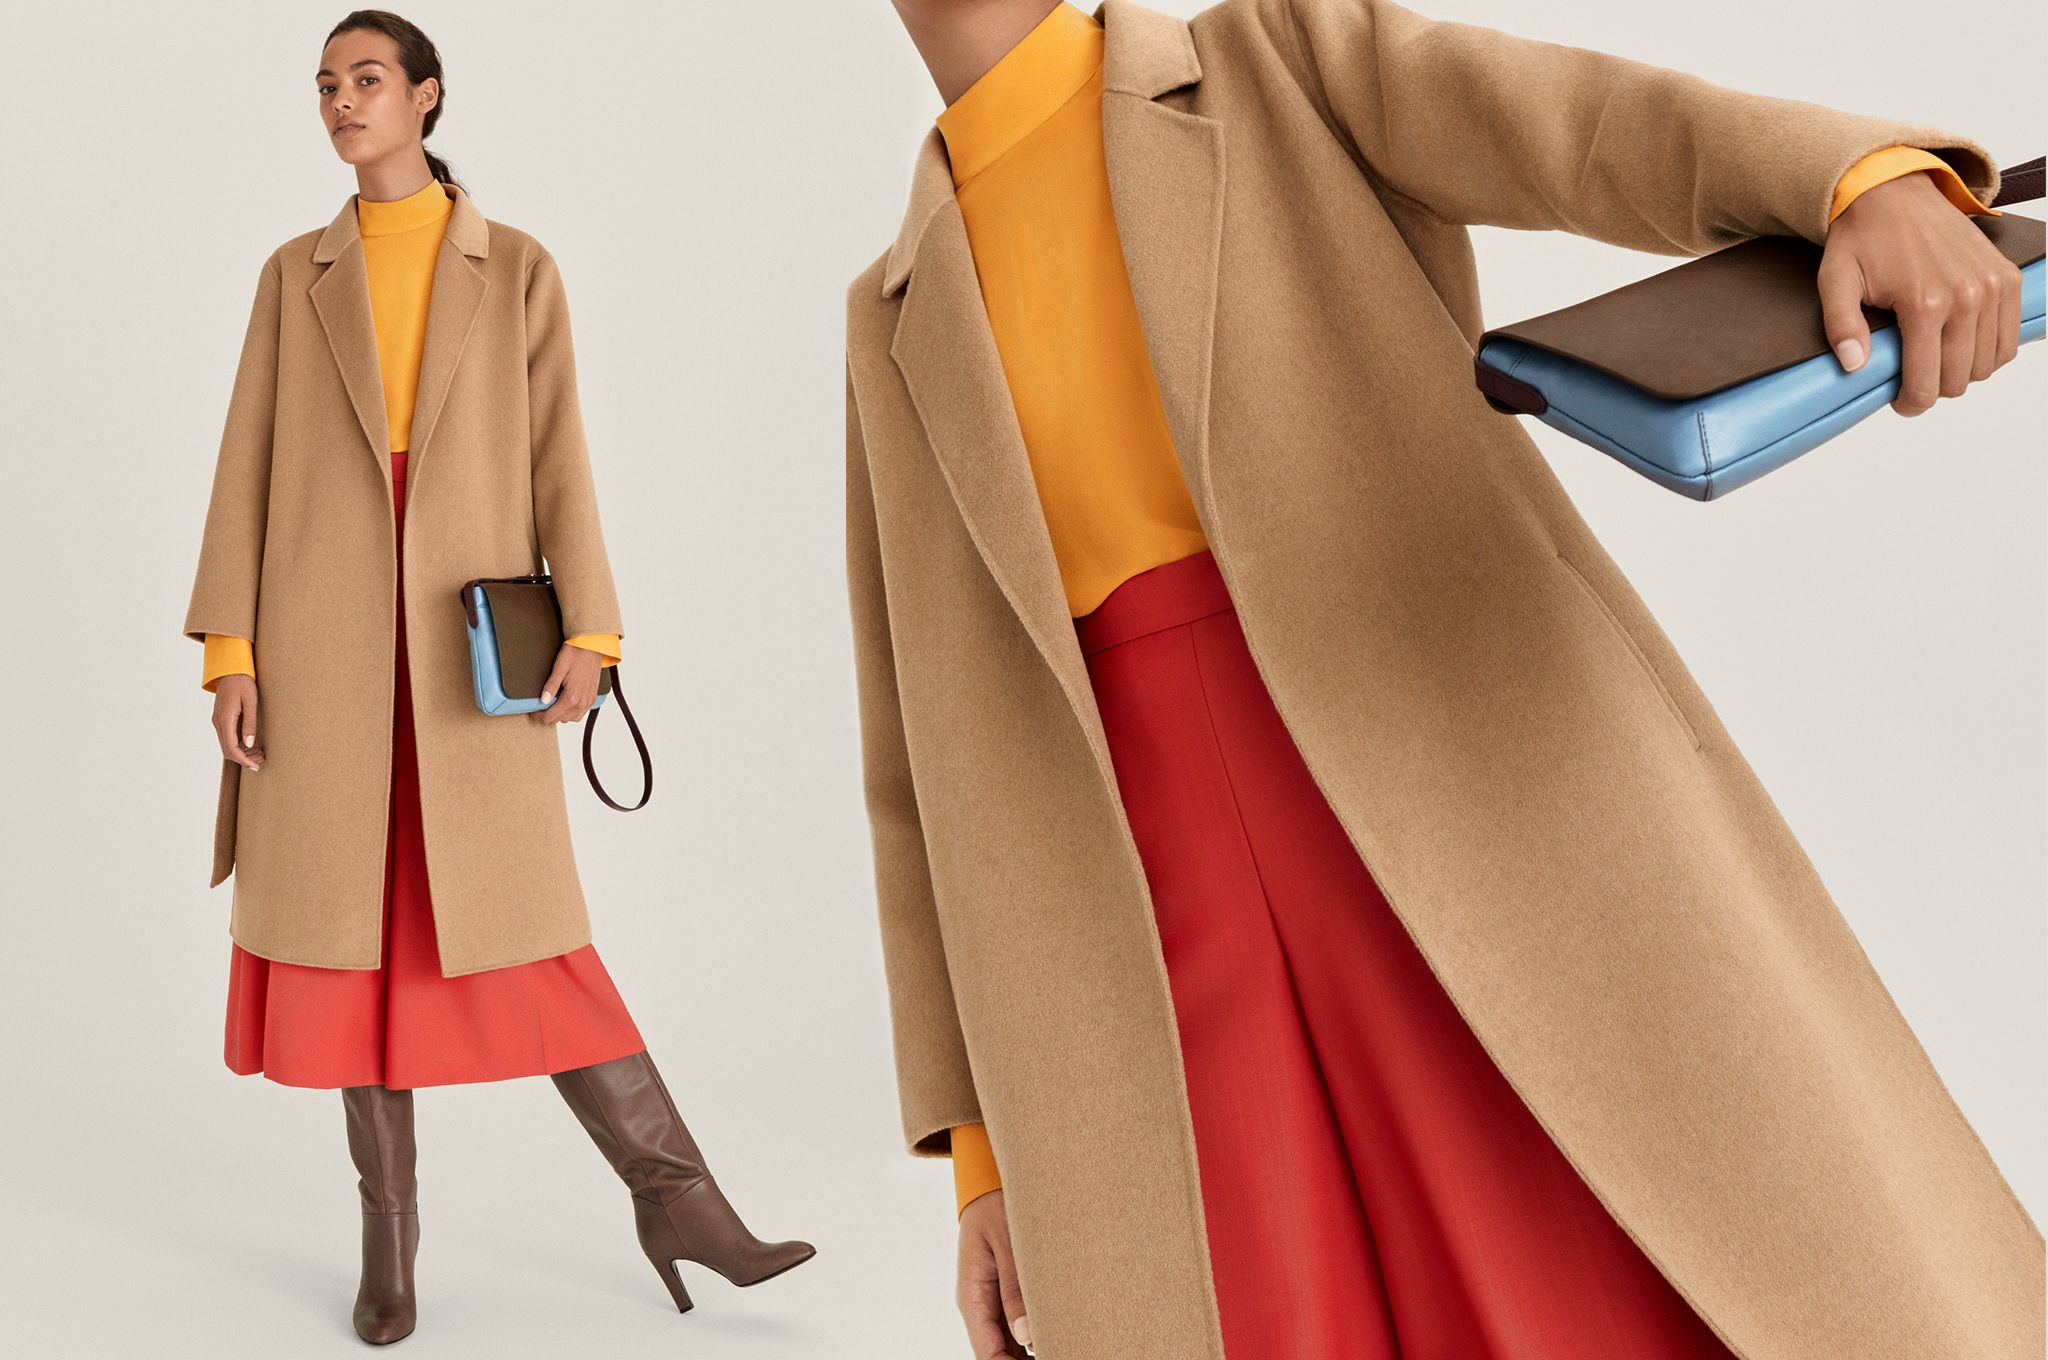 Model wearing camel coat, orange skirt and brown boots